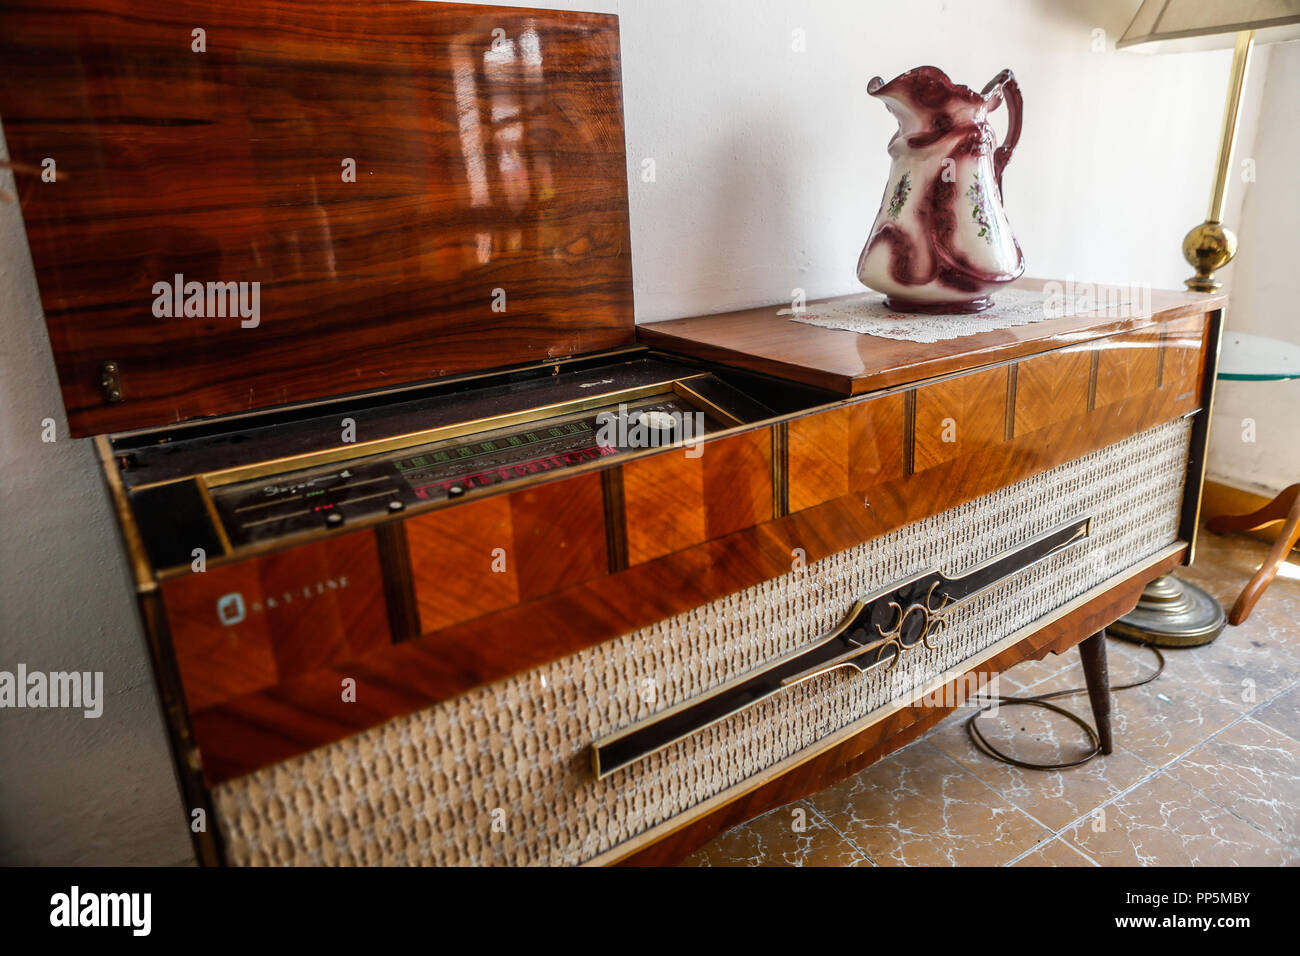 Classic Vinyl Record Player With Radio. AM radio, FM, Tune frequency of radio stations. Wooden furniture. Classic furniture Ceramic decorative vase an - Stock Image